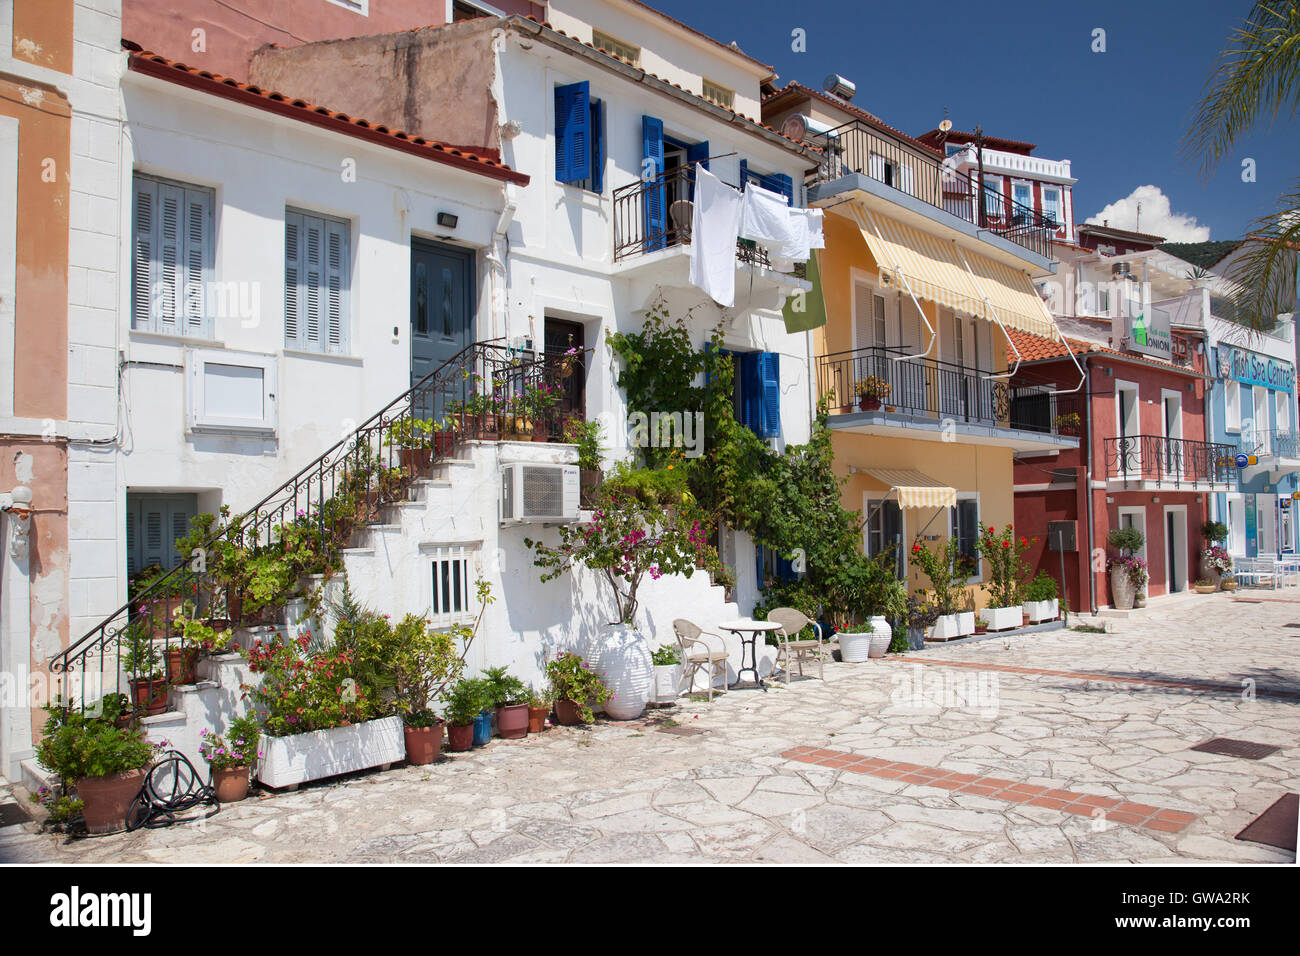 The colourful houses of Parga, Mainland Greece - Stock Image